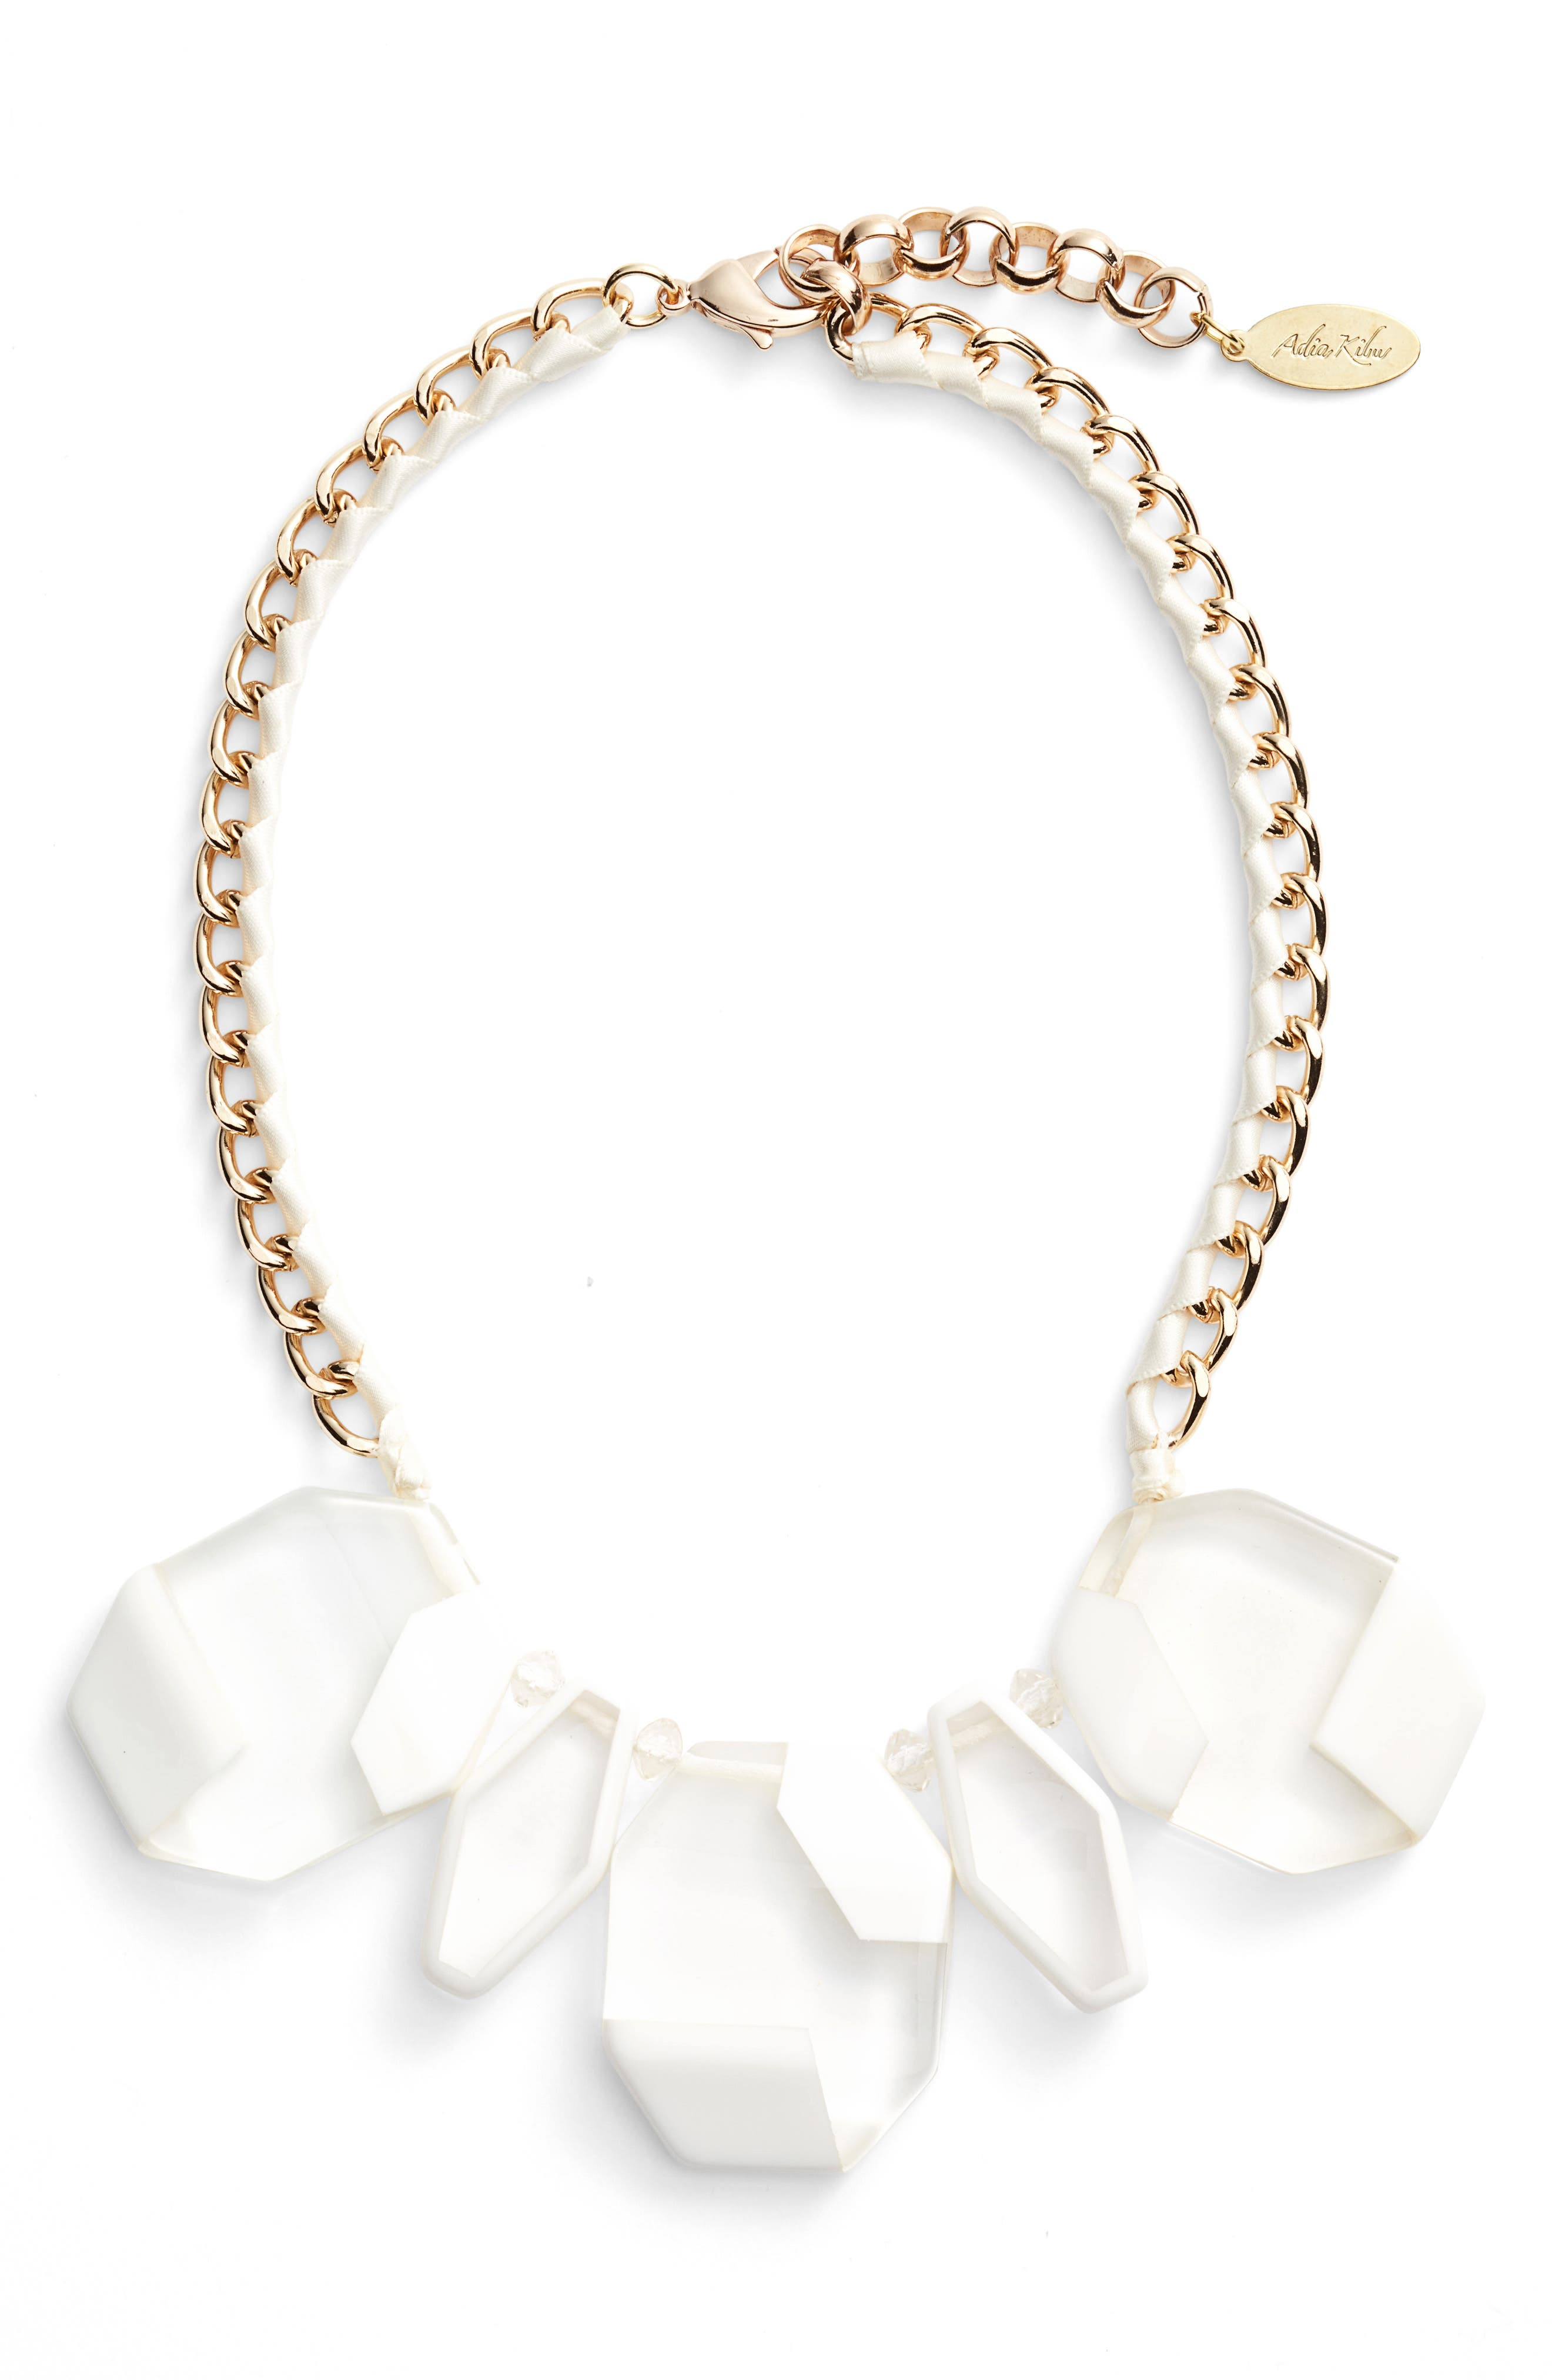 Resin Statement Necklace,                             Main thumbnail 1, color,                             White/ Clear